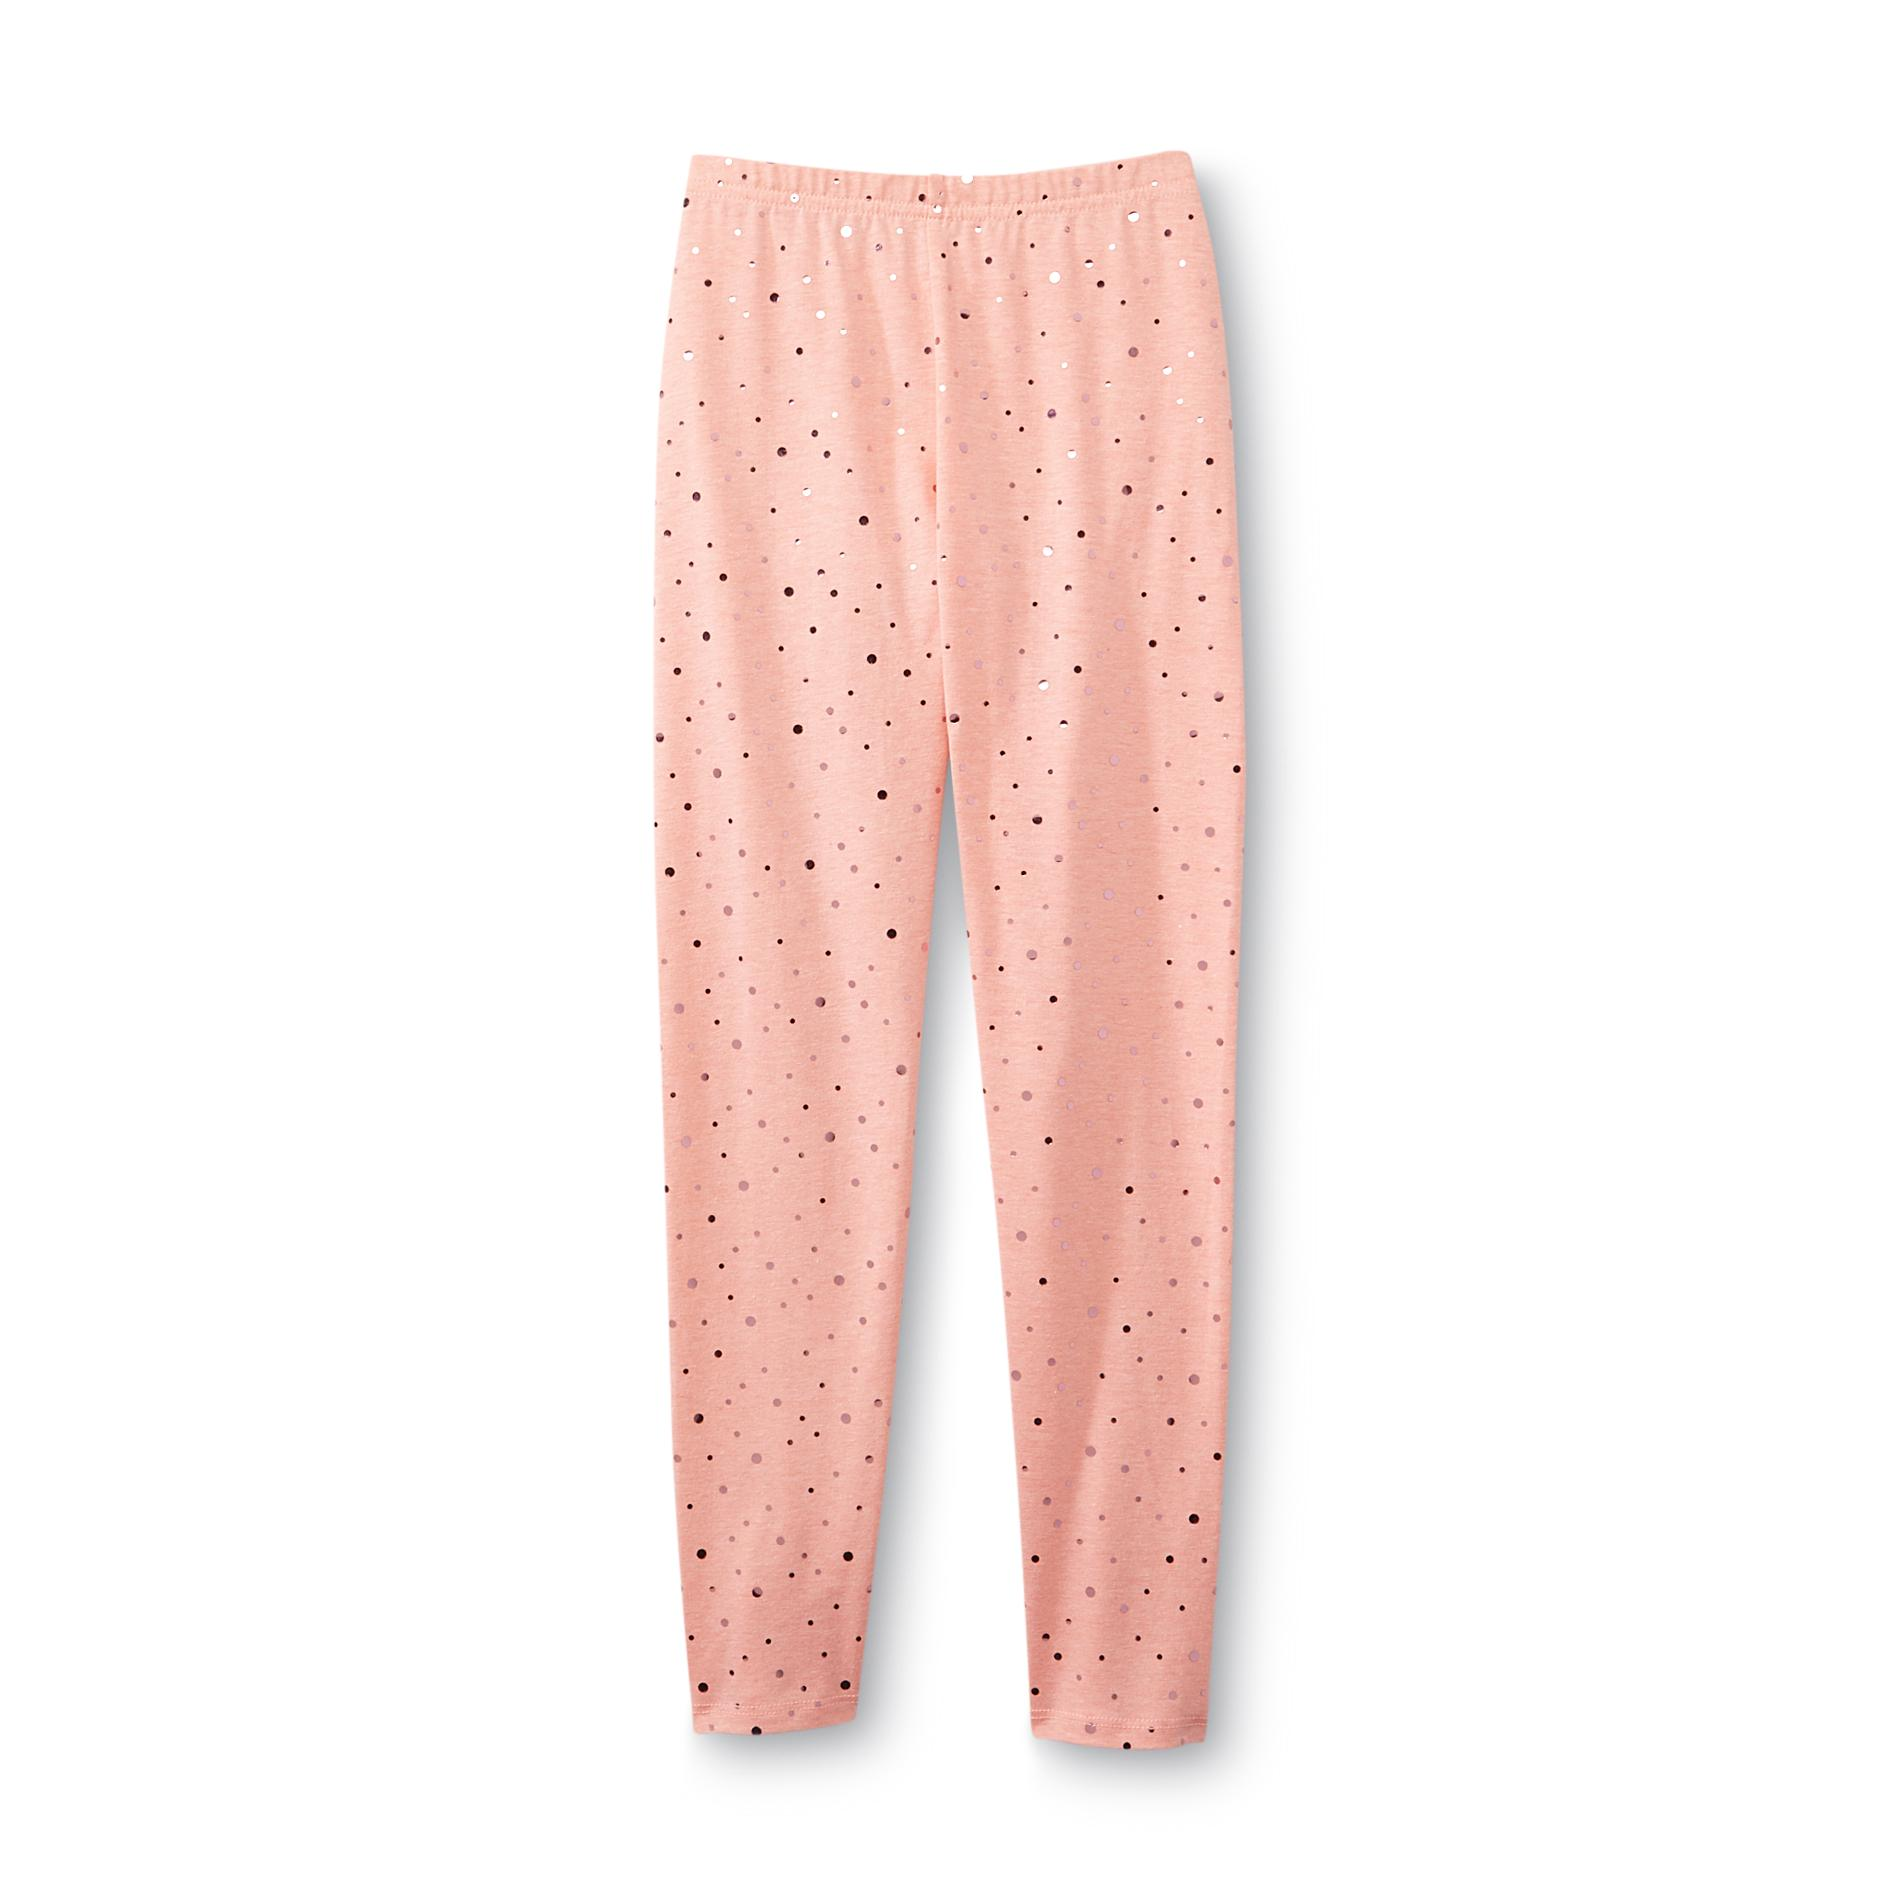 Basic Editions Girl's Disco Dot Leggings - Neon at Kmart.com